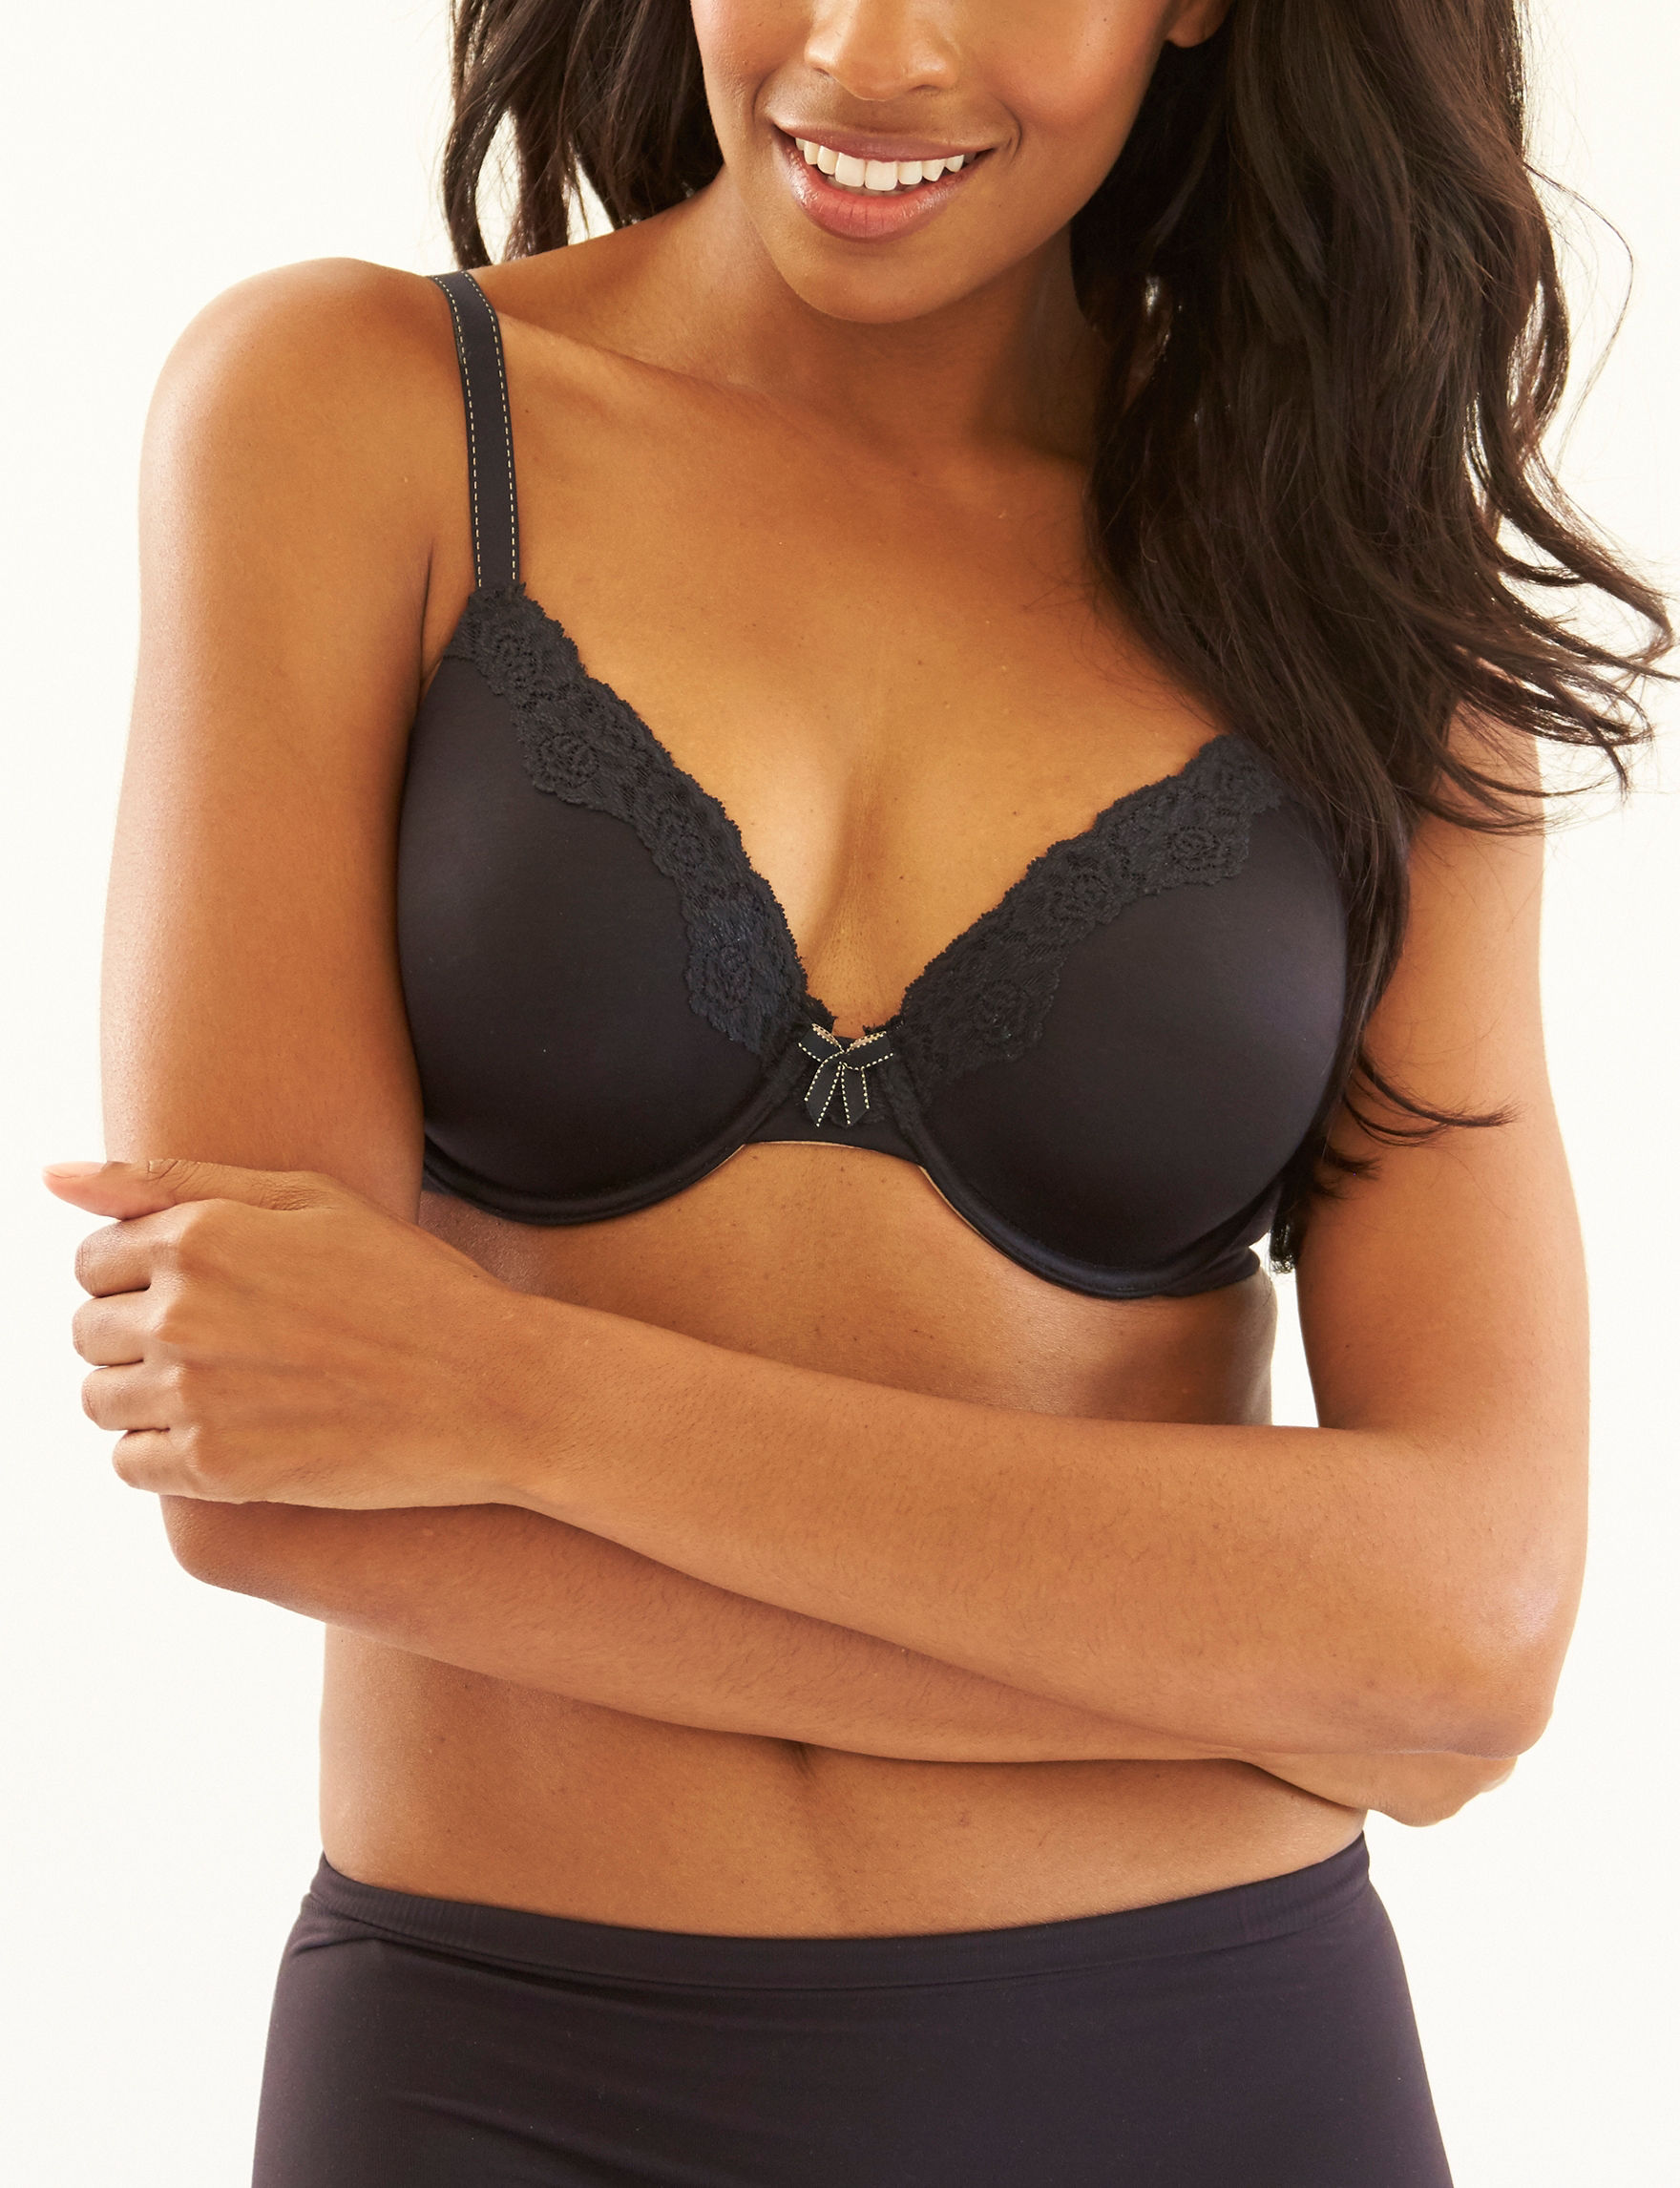 comforter full image bra upc hei for product coverage sharpen op wid devotion maidenform embellished comfort